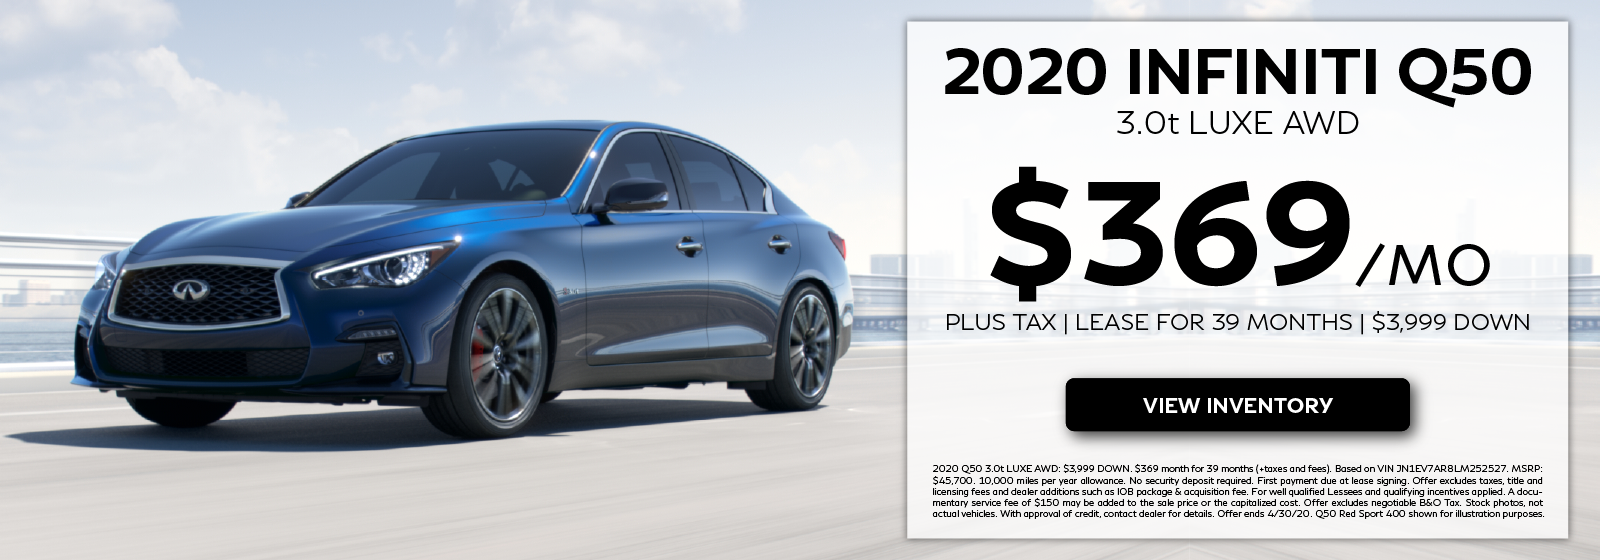 2020 Q50 3.0t LUXE AWD - Lease for $369 per month for 39 months. Click to view inventory.